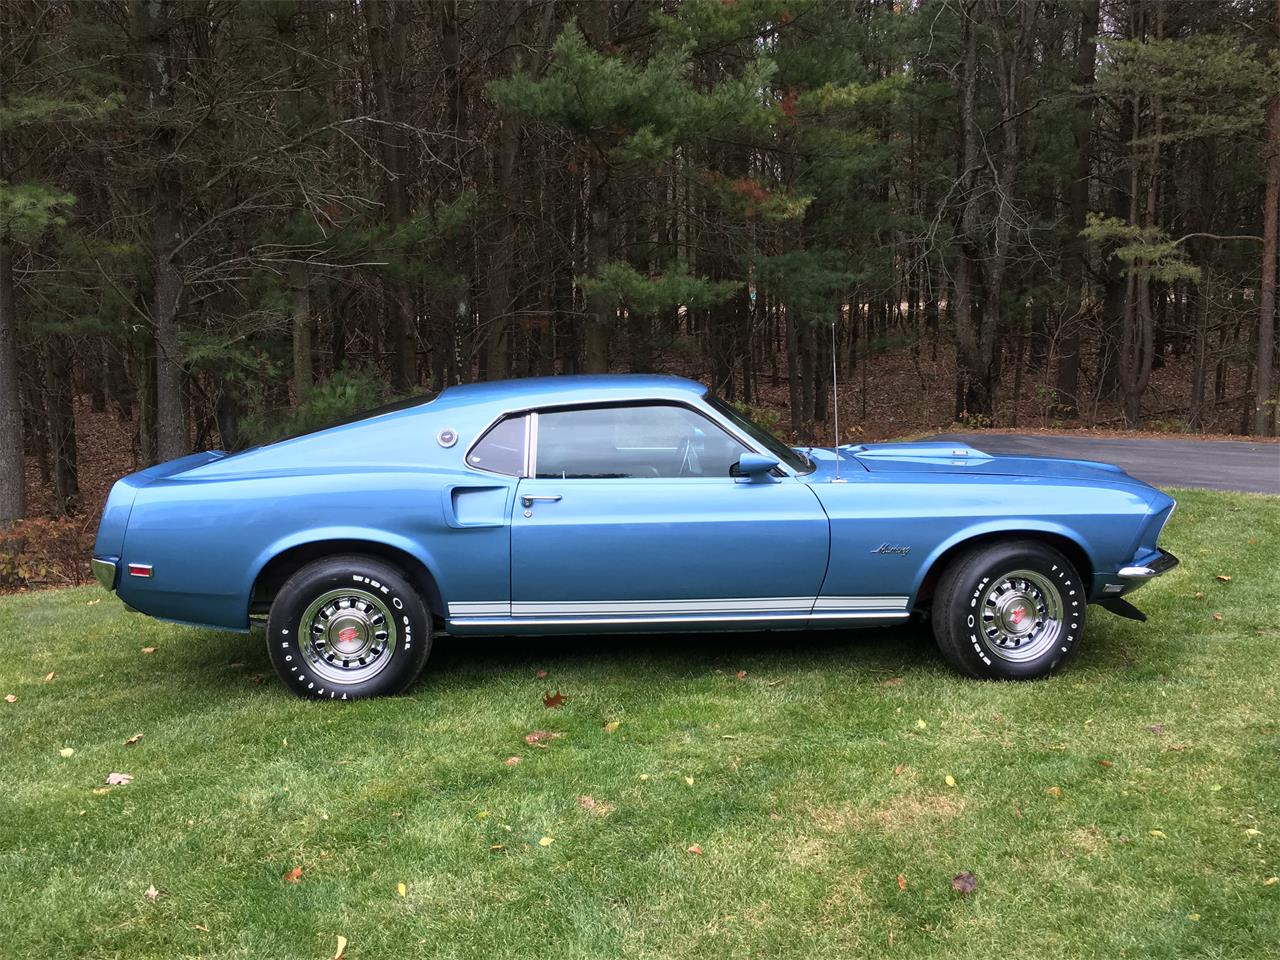 Large picture of classic 1969 ford mustang gt oc00